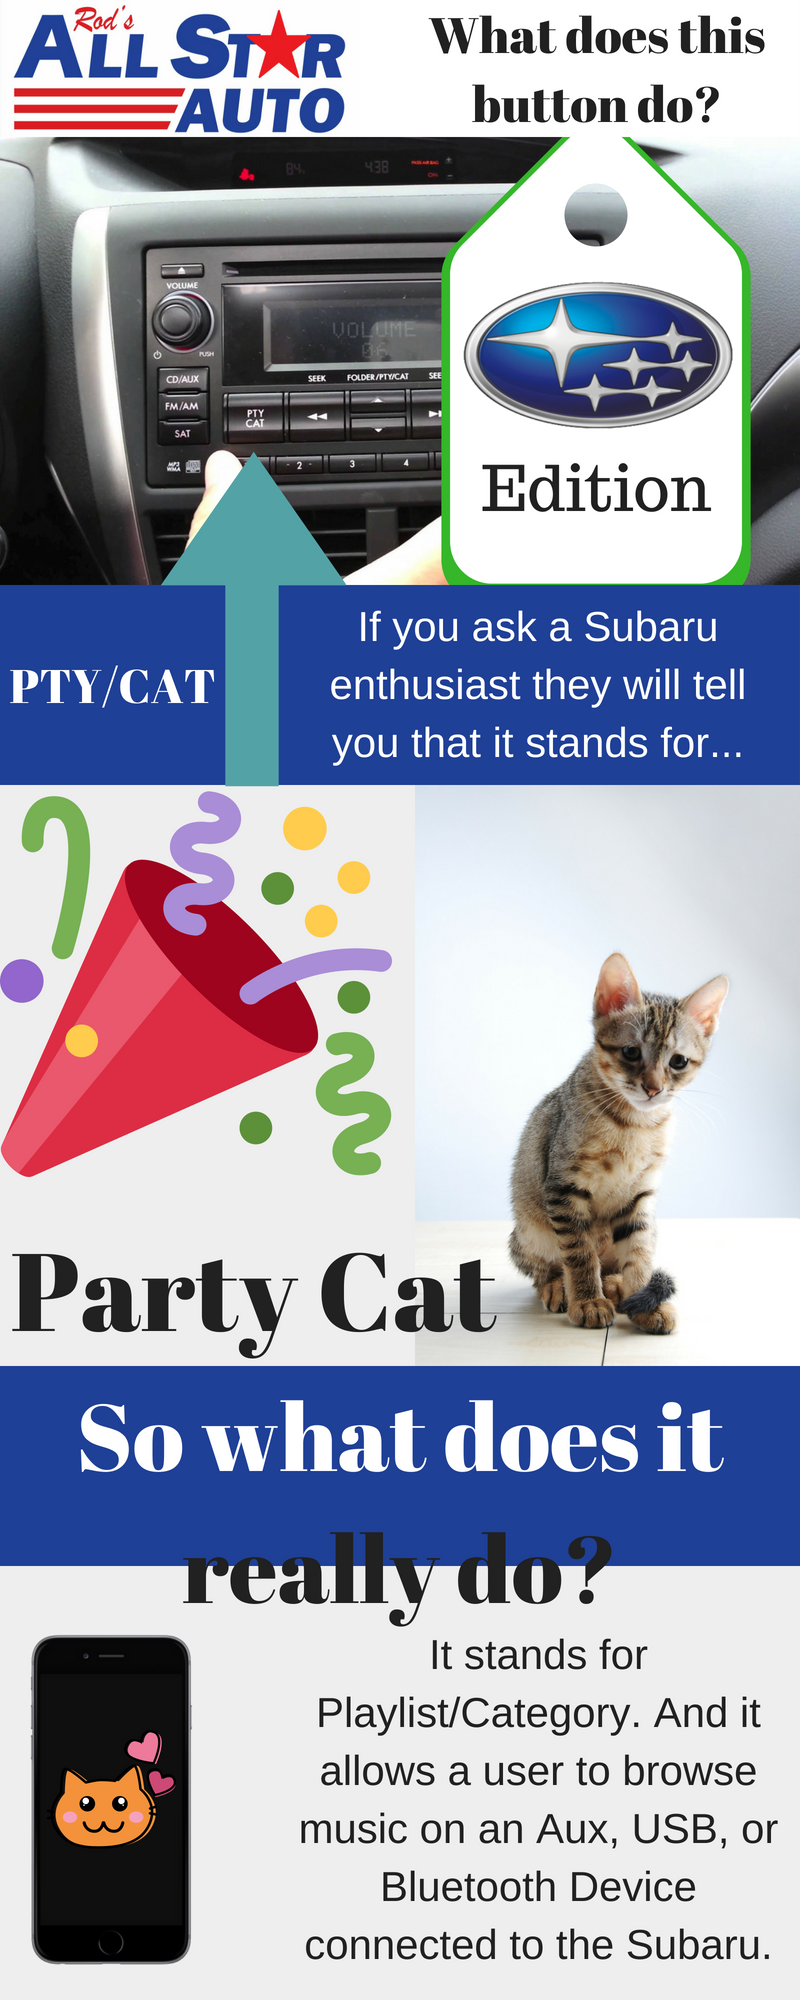 Infographic. PTY/CAT Subaru radio button. created by Rods All Star Auto